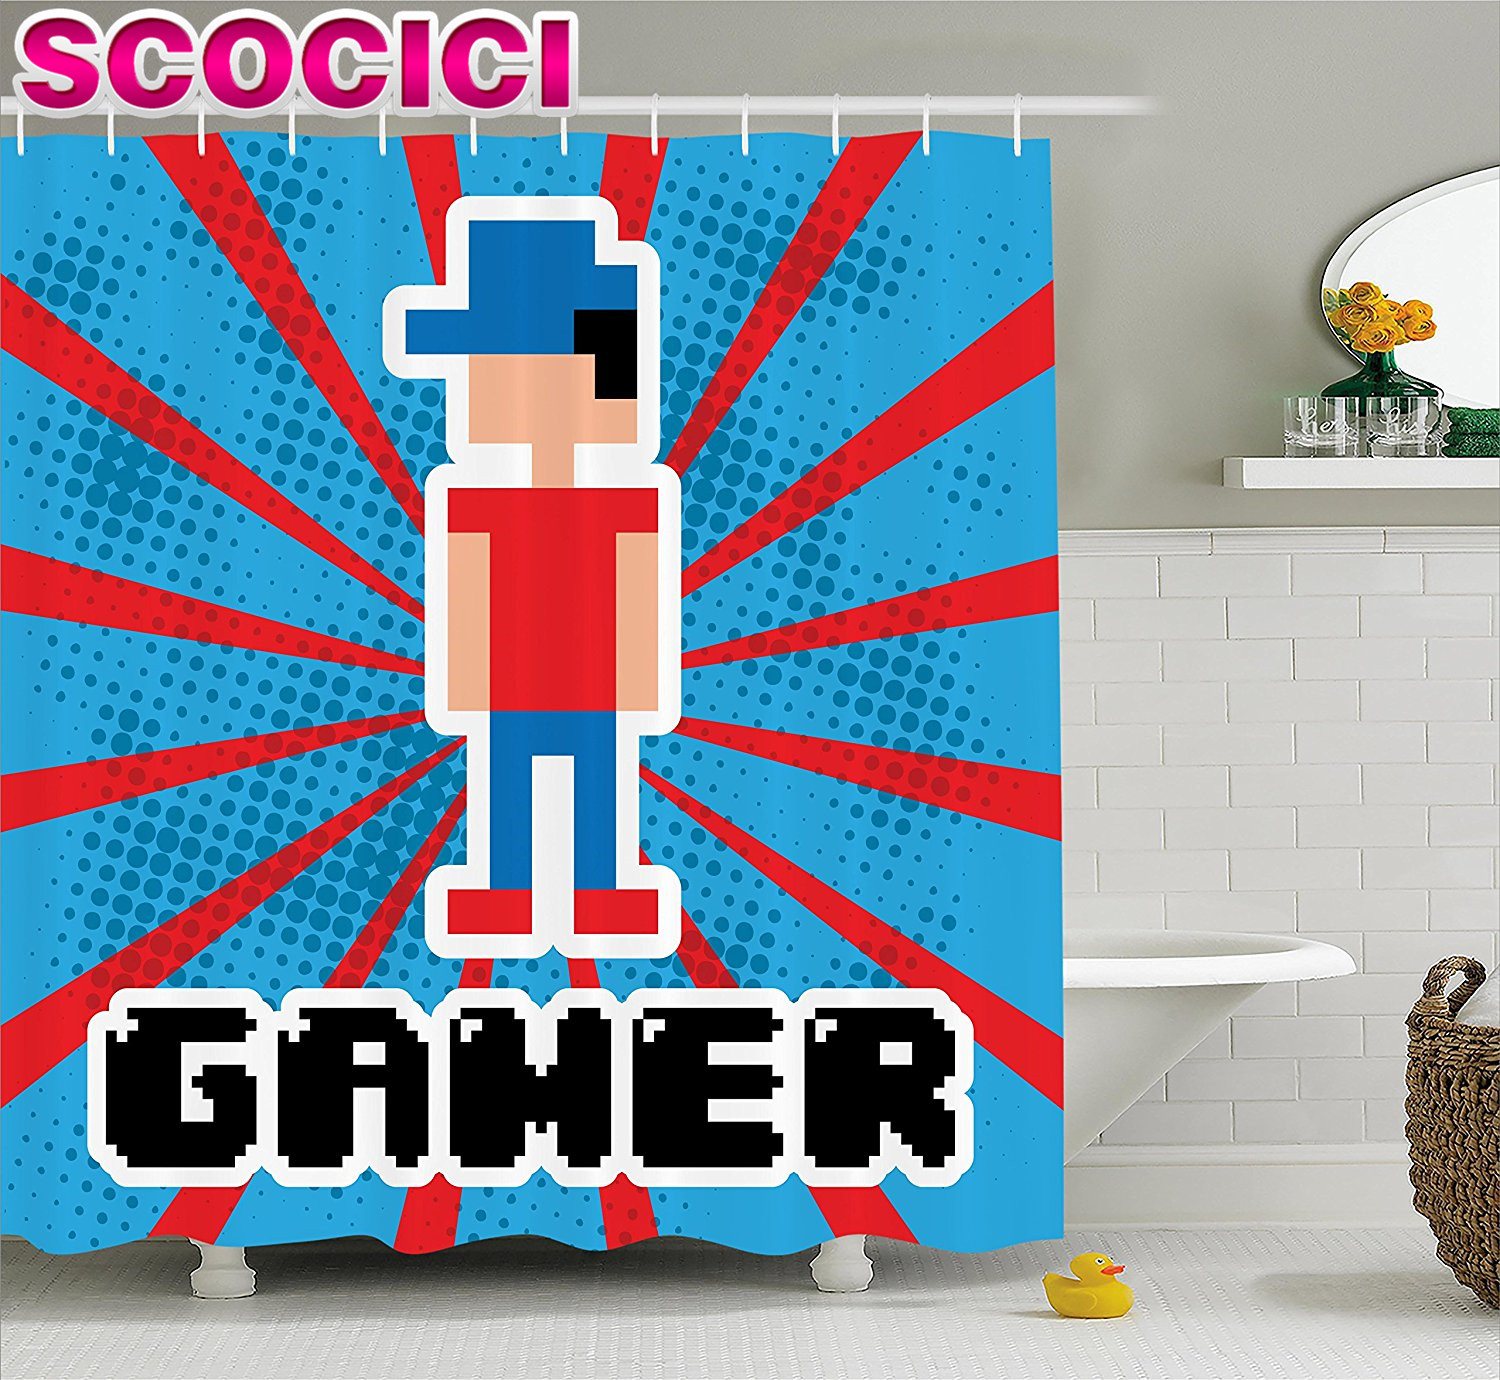 video games shower curtain set blue and red stripes boom beams retro 90s style toys boy with cap gamepad fabric bathroom decor r